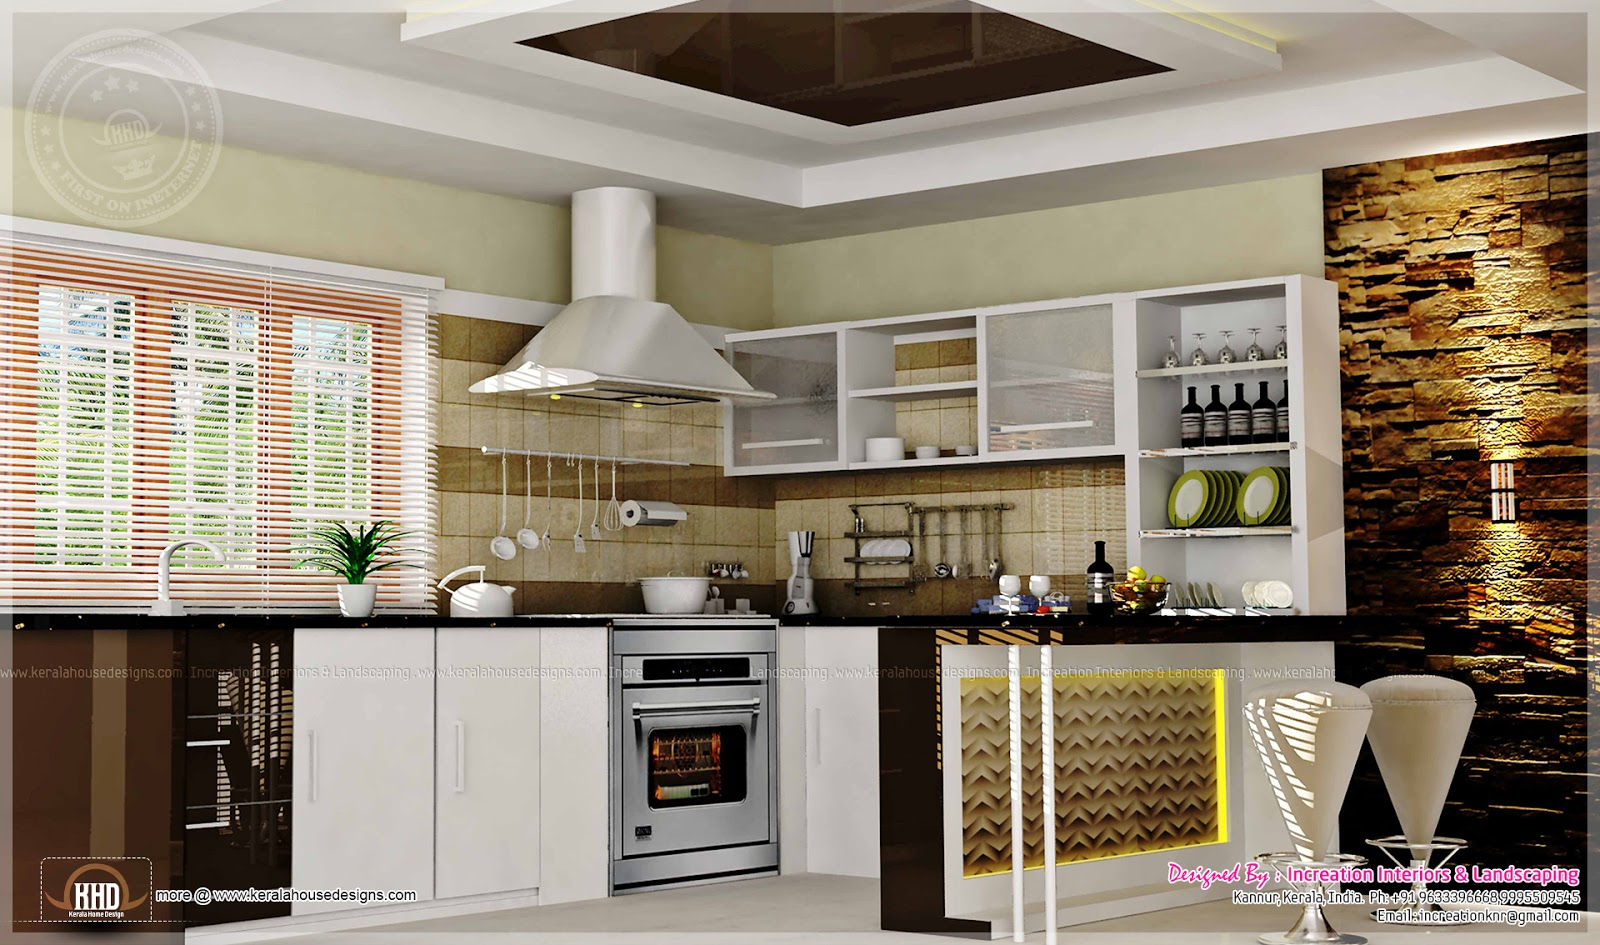 Kitchen Interior Design: Home Interior Designs By Increation